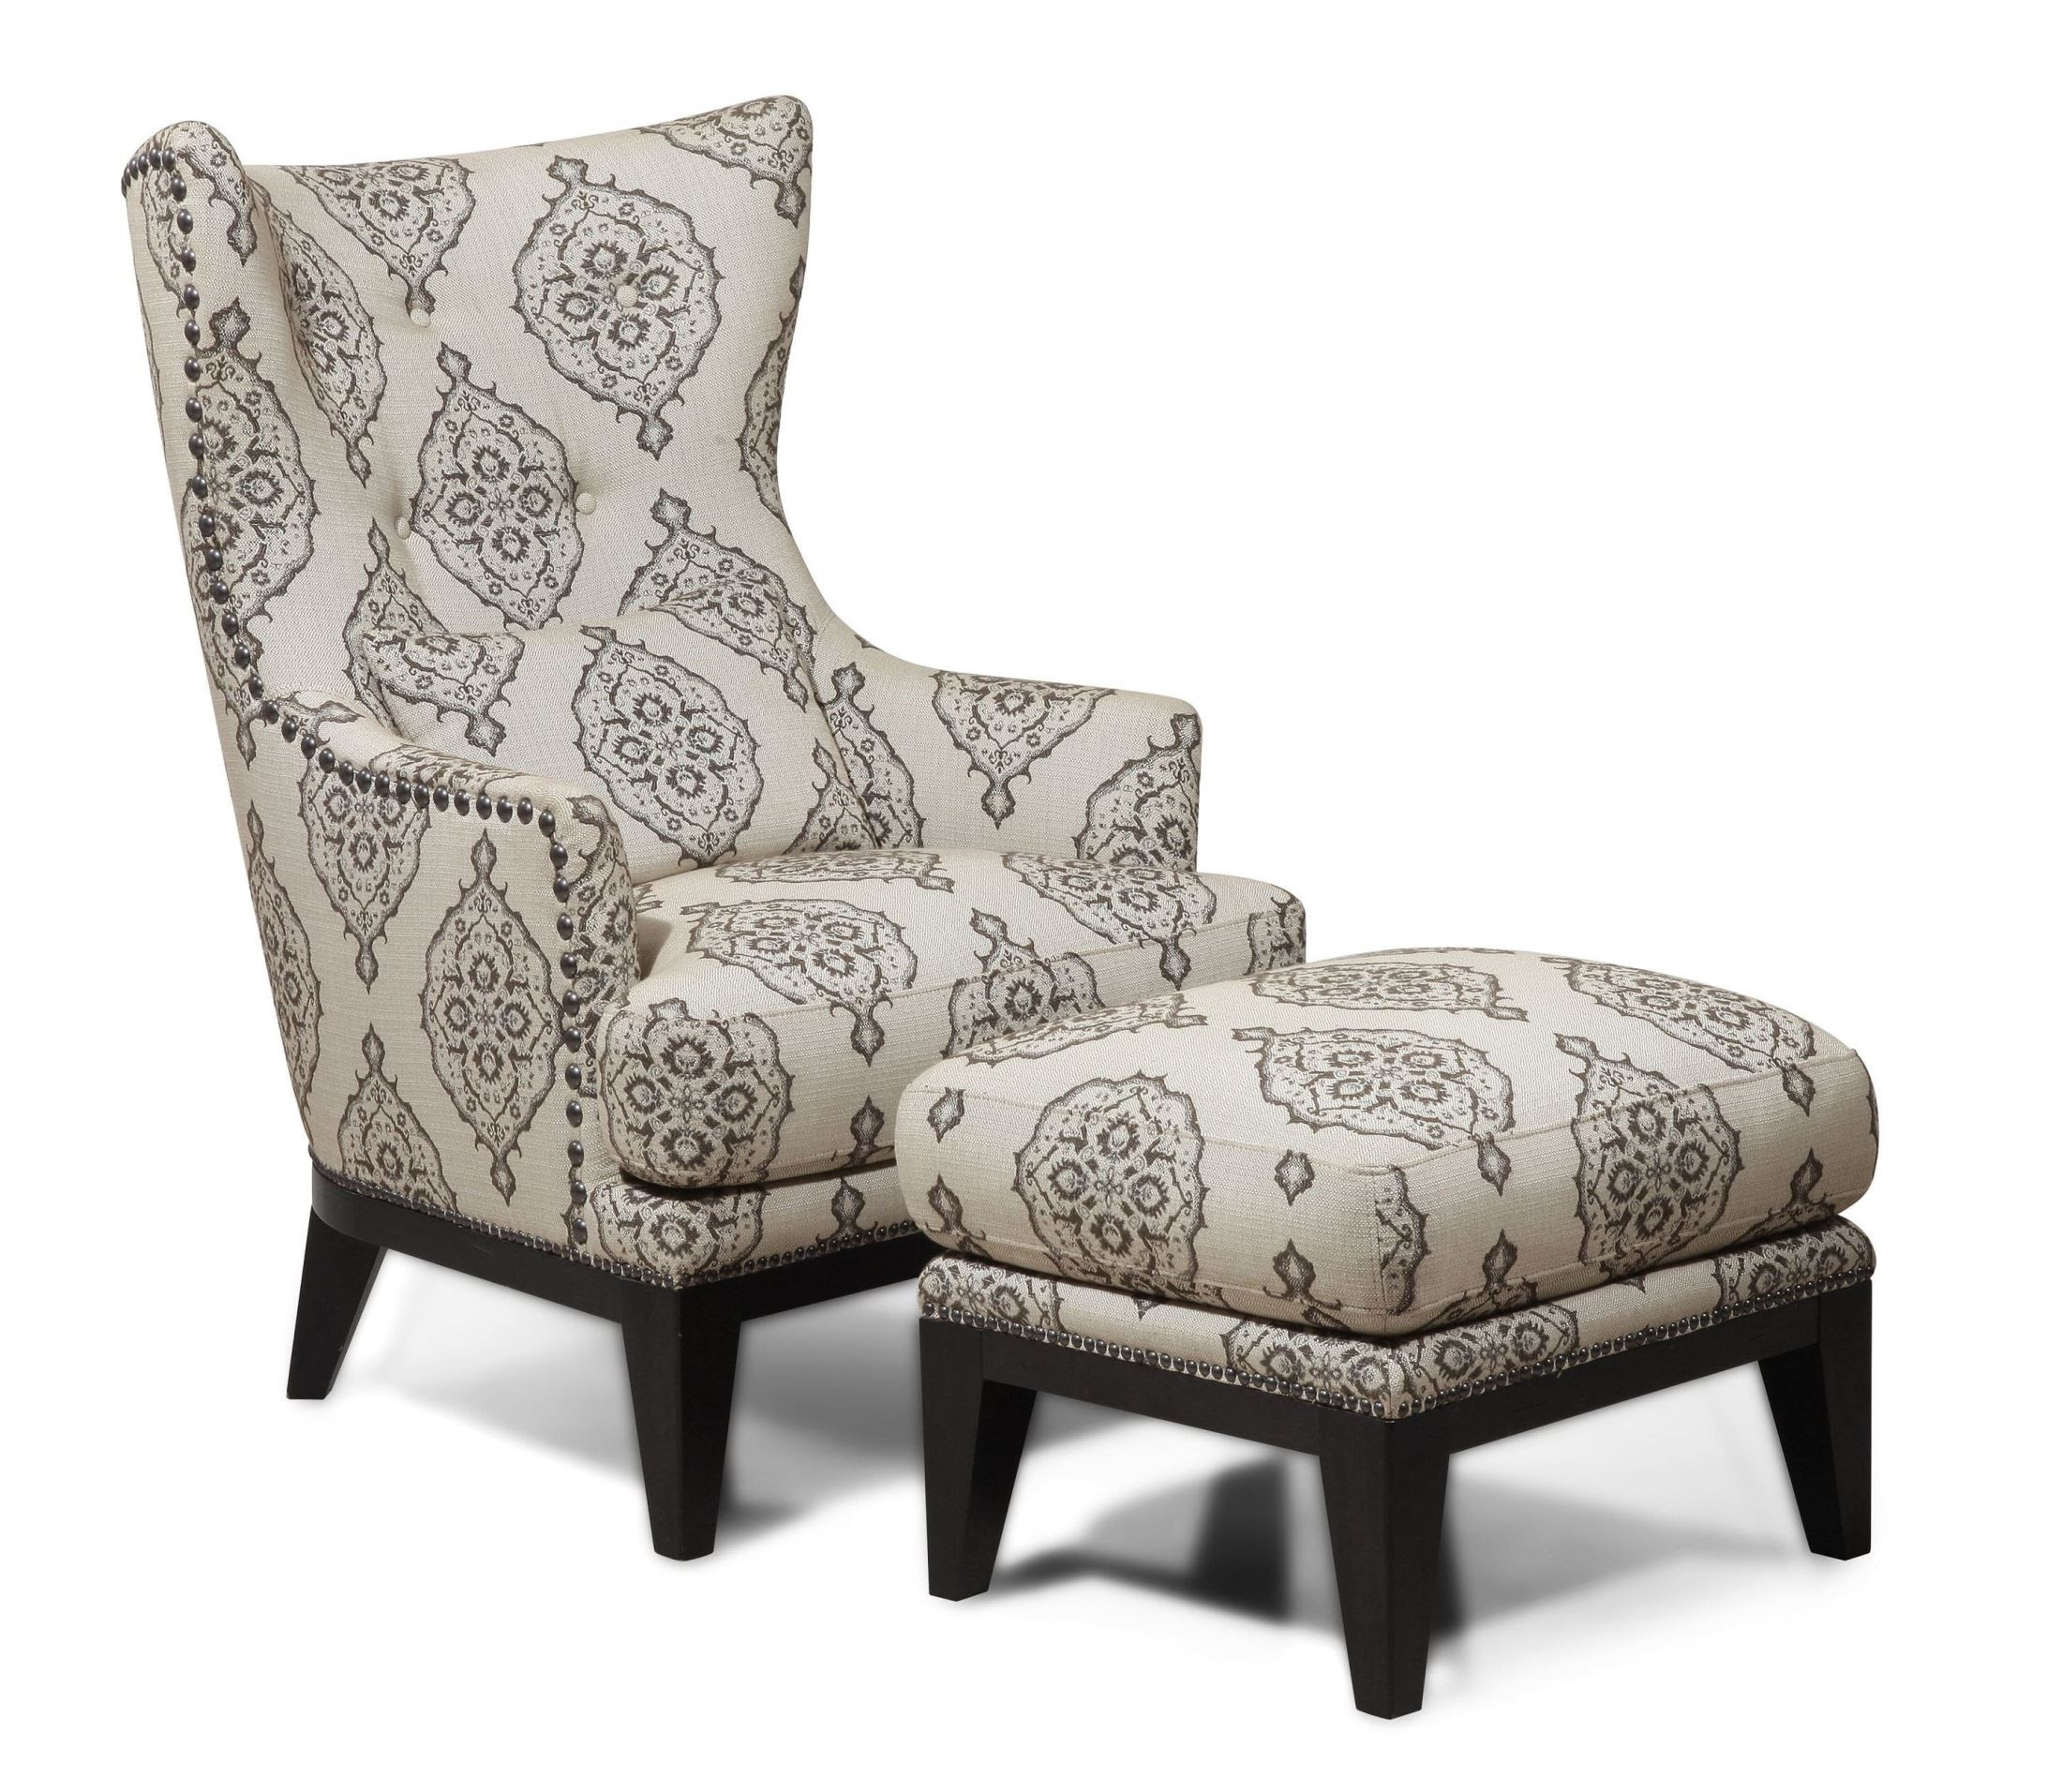 Charleston Antique Espresso Accent Chair  Ottoman from